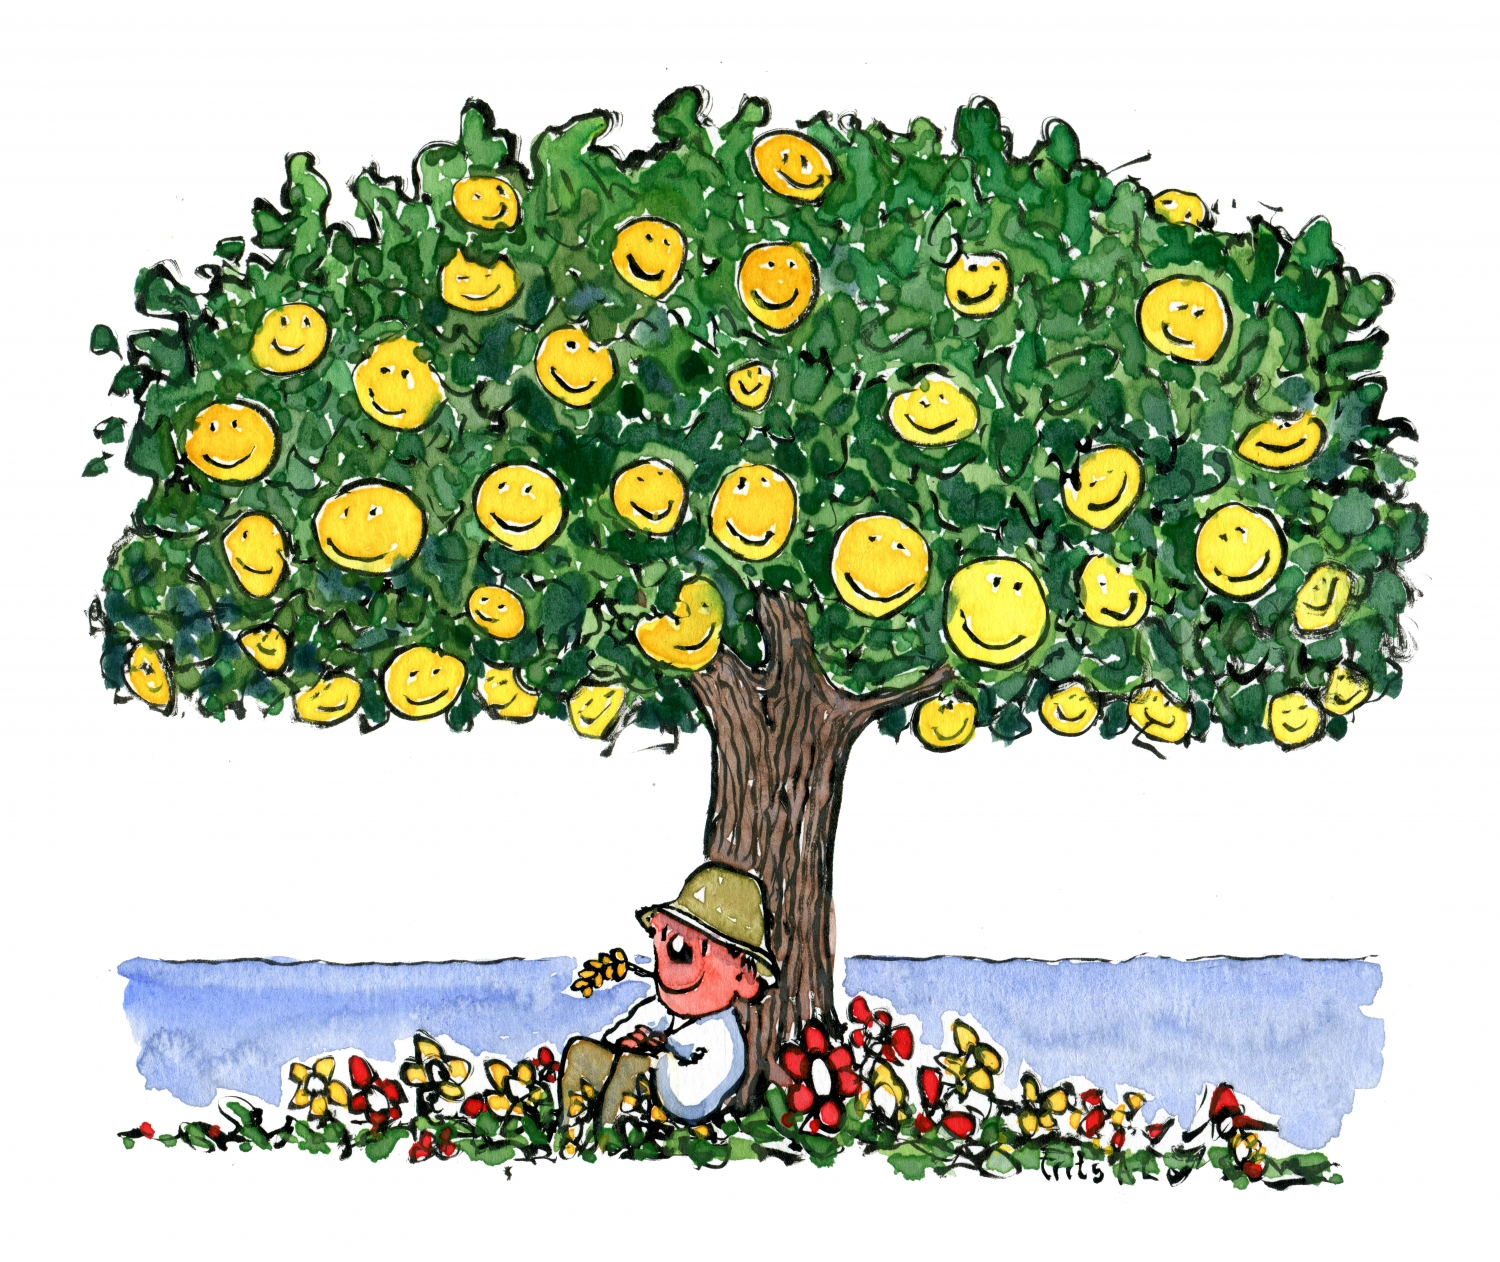 man under smiley tree illustration by frits ahlefeldt new years clip art 2019 new years clipart backgrounds